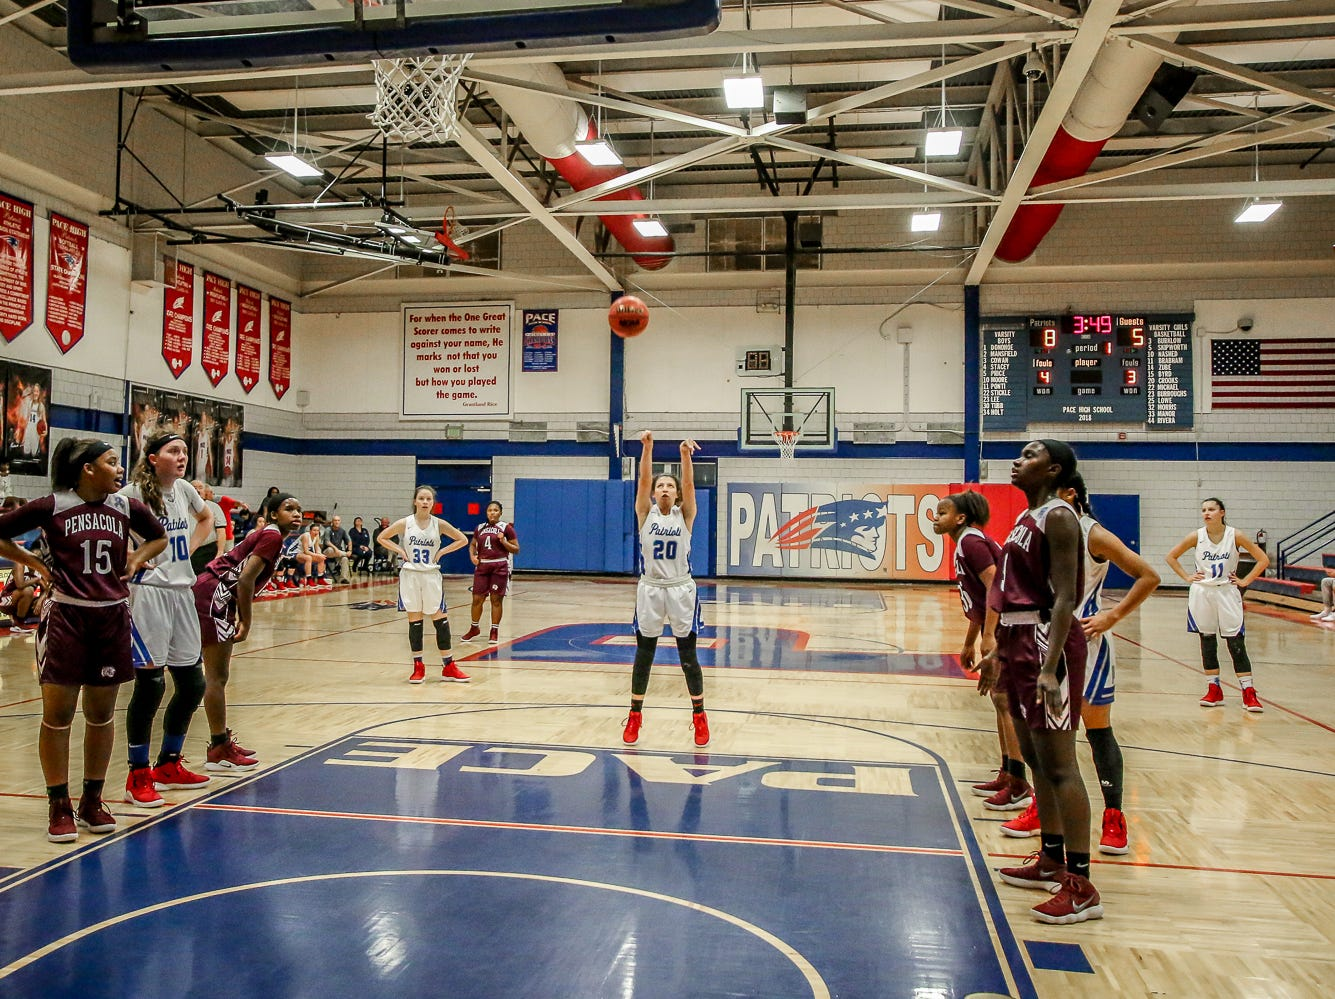 Pace's Shay Crooks (20) goes for a free throw during the game against PHS at Pace High School on Friday, January 4, 2019.